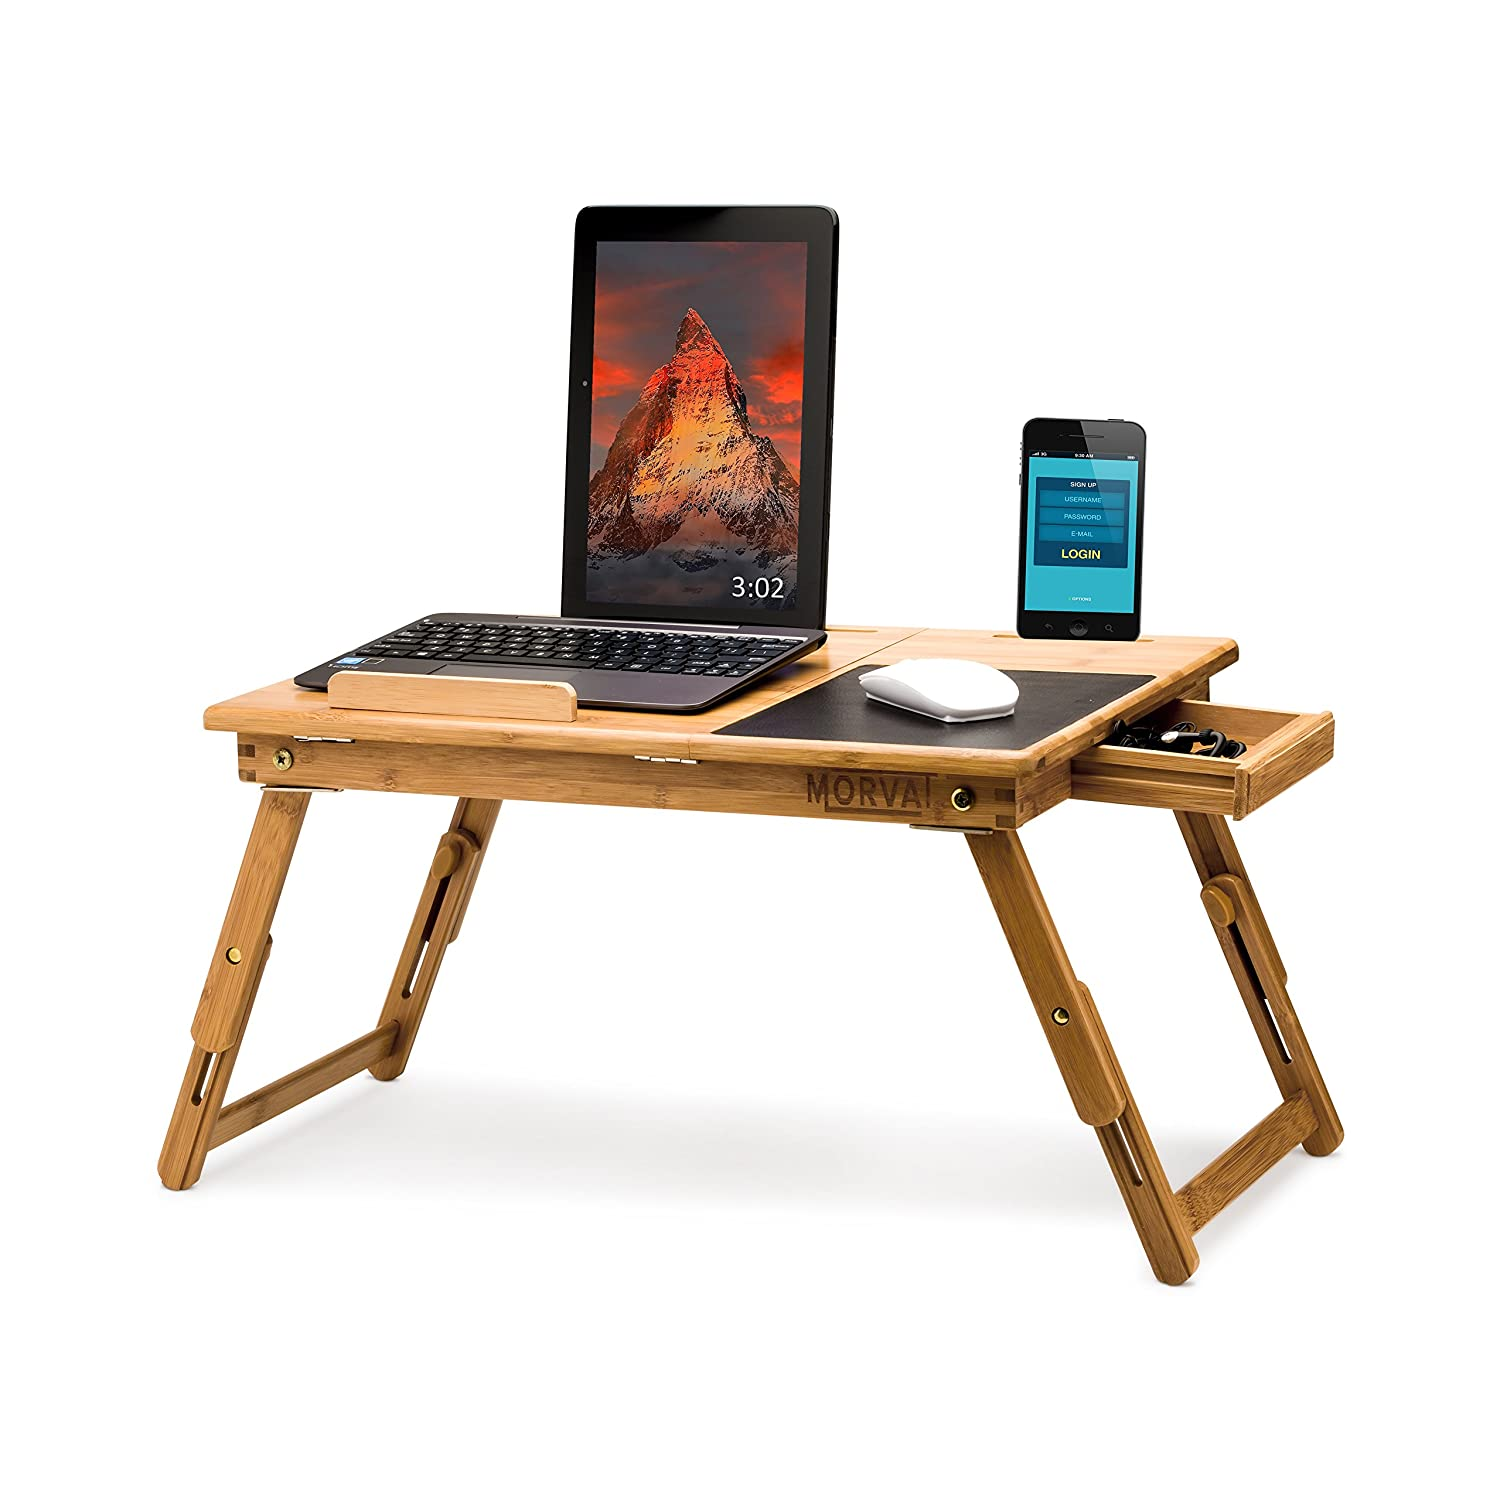 Adjustable Bamboo Lap Desk by MORVAT with Built in Mouse Pad | Can be Used as Riser or Lap Desk for Laptop or Tablet | The Most Convenient Way to Work and Play | Adults and Kids